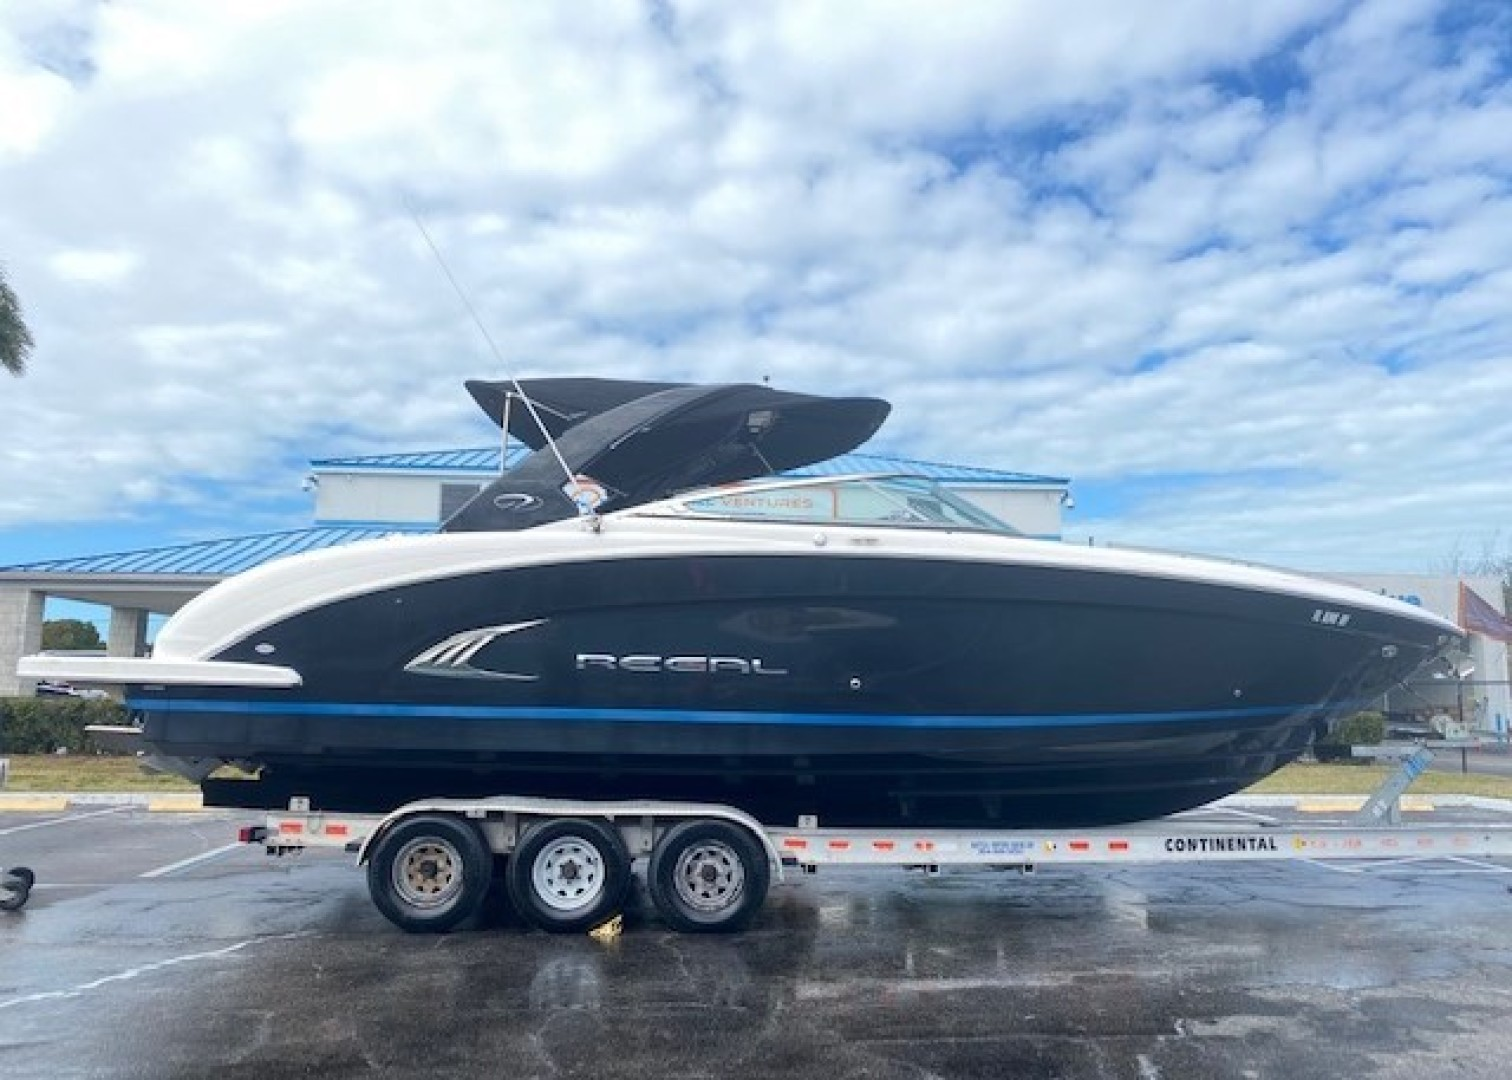 Regal-3200 Bowrider 2015 -Tampa Bay-Florida-United States-1616536 | Thumbnail